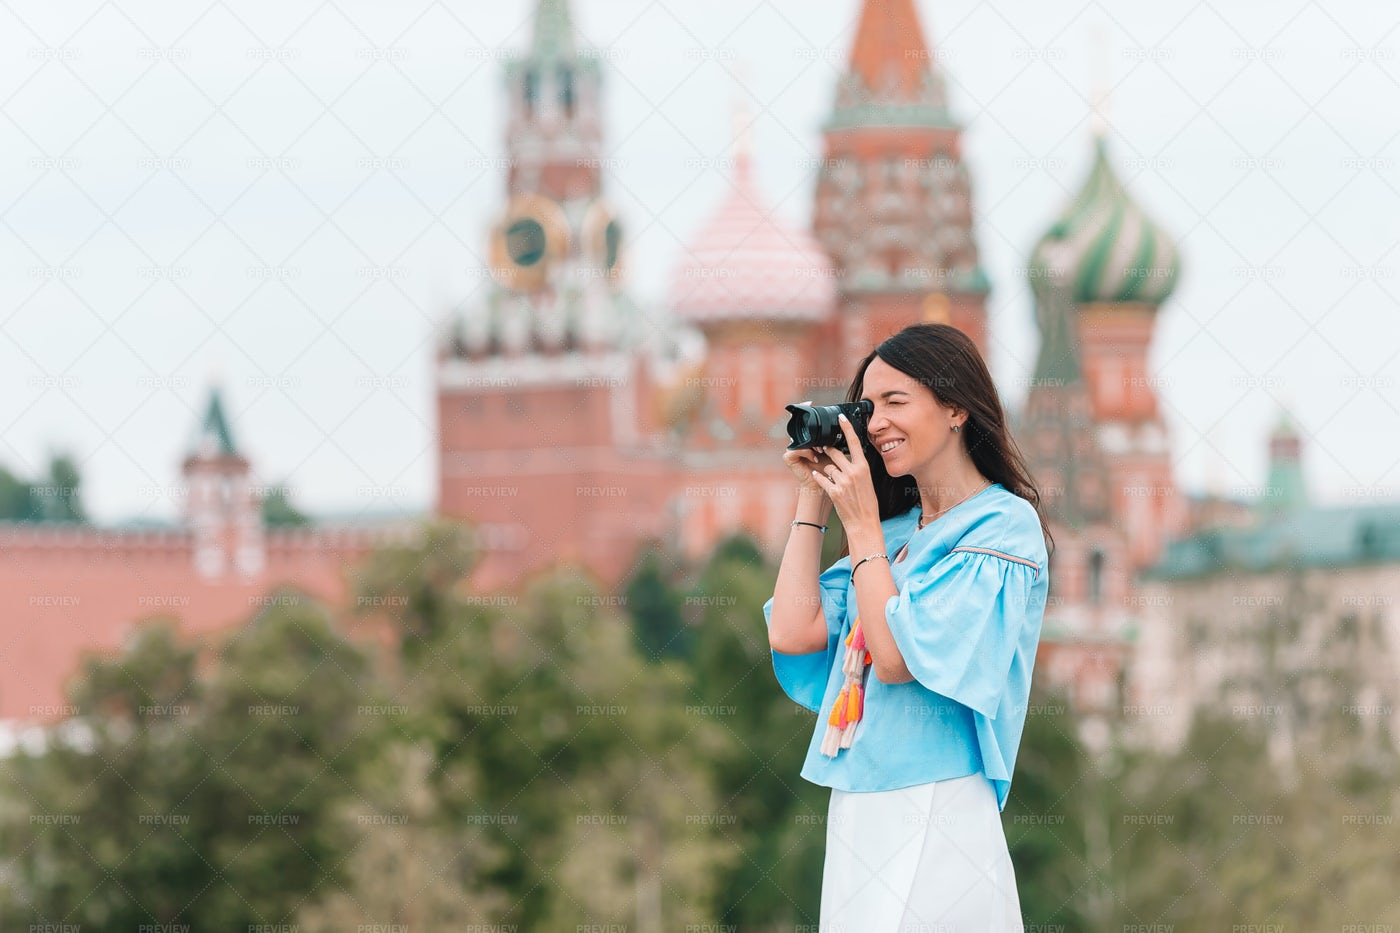 Sightseeing In Moscow: Stock Photos